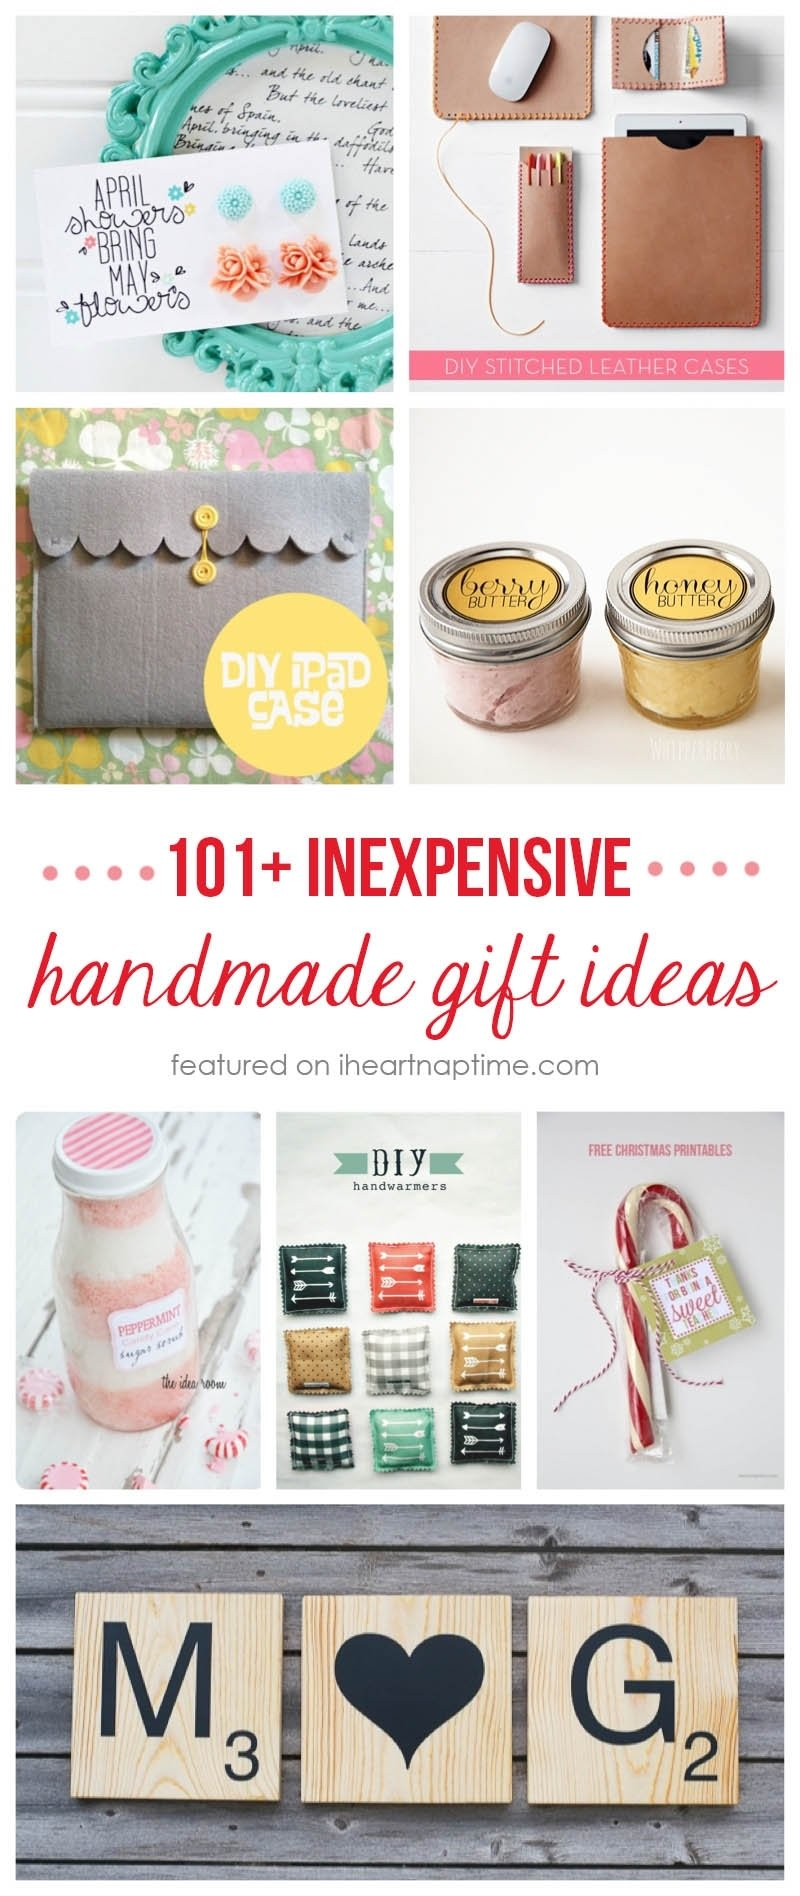 10 Great Great Homemade Christmas Gift Ideas 101 inexpensive handmade christmas gifts i heart nap time 13 2020